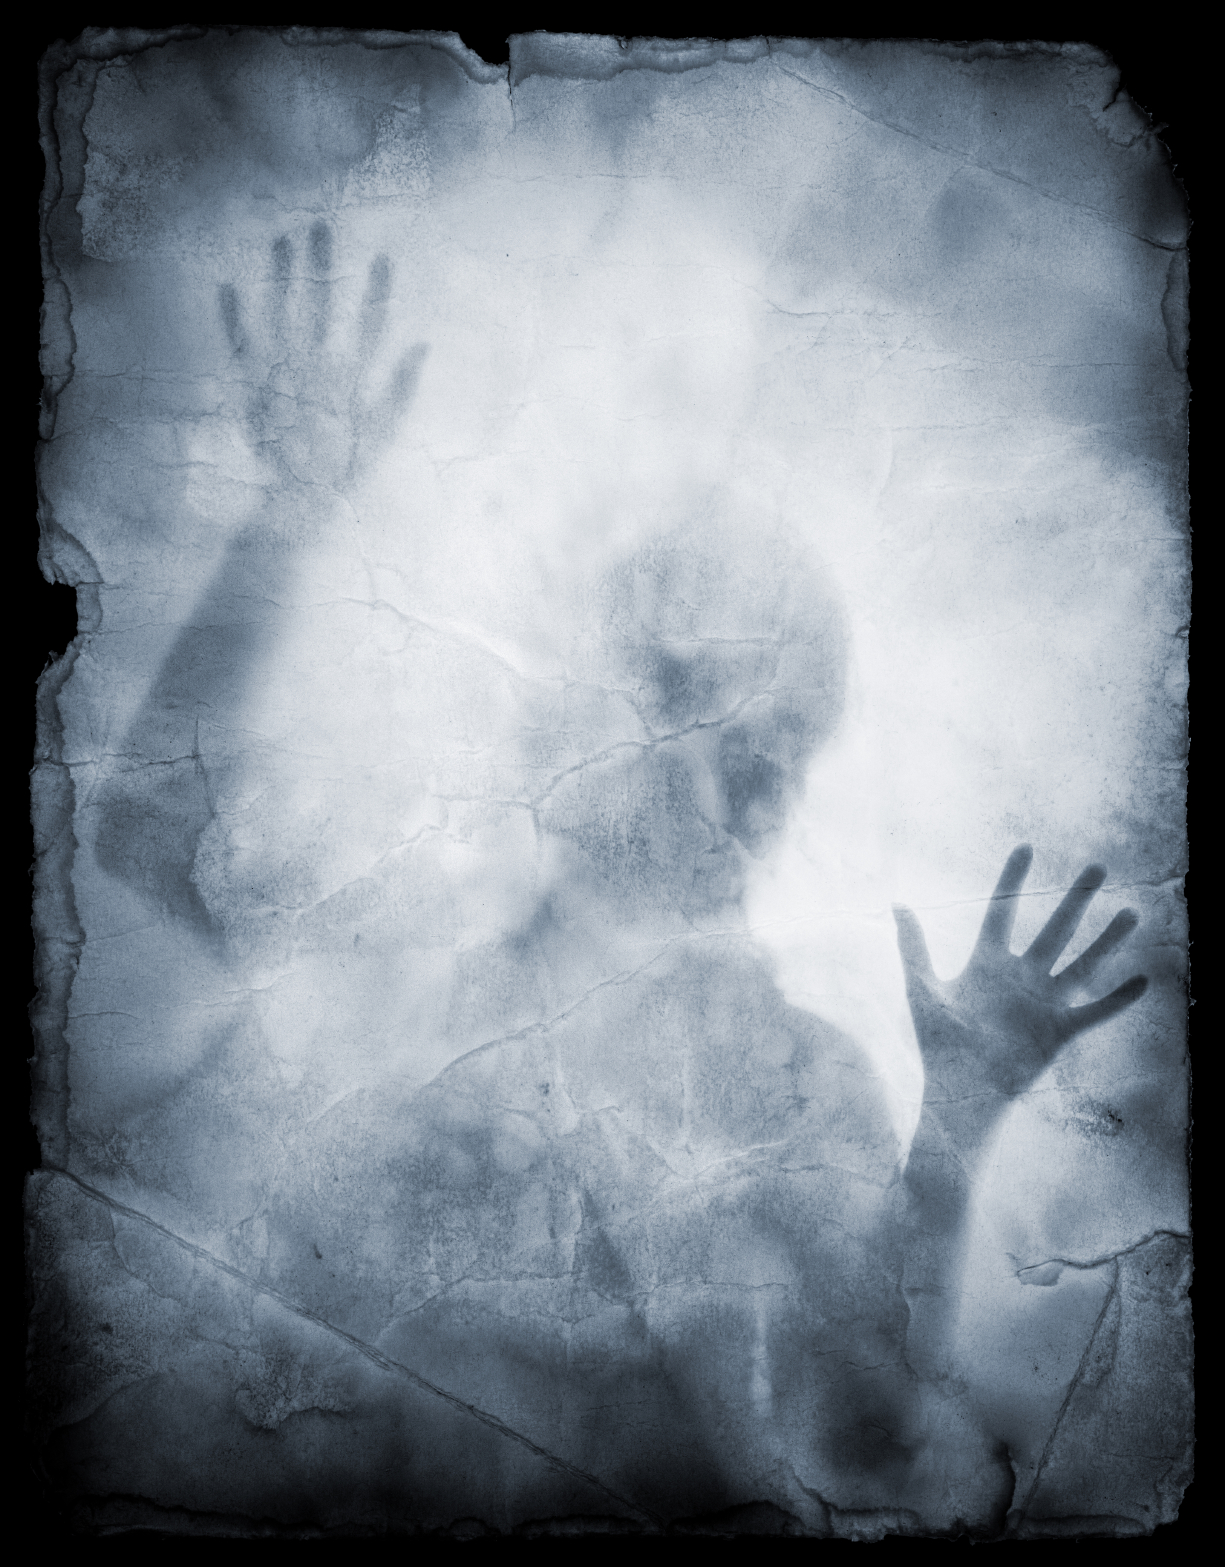 supernatural experience and ghosts Welcome to r/paranormal we welcome personal paranormal experiences, debunked evidence, photo/video/audio evidence, thoughts and theories, discussion of equipment used and more.